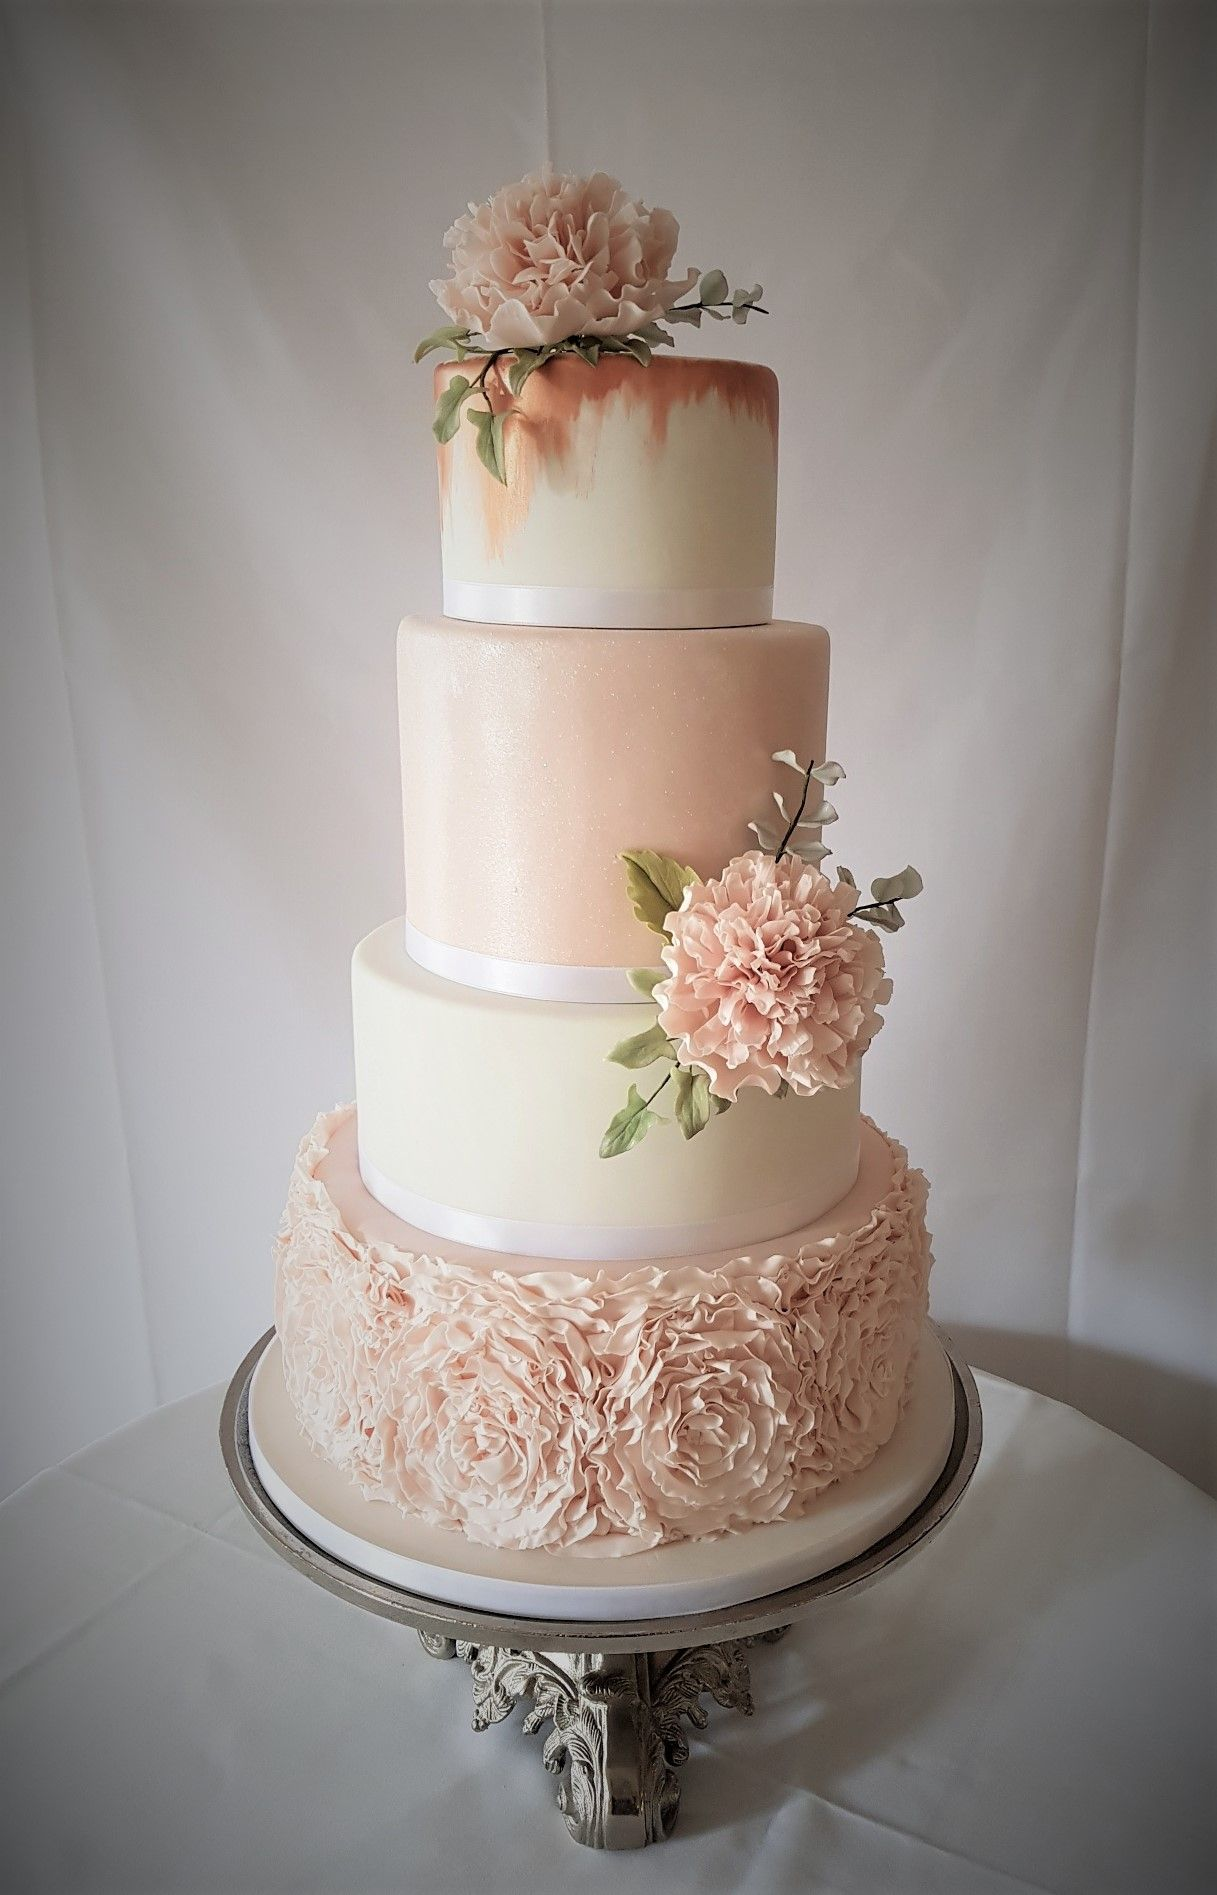 Blush Pink Wedding Cake Blush Pink Wedding Cake Pink Wedding Cake Pink Gold Wedding Cake